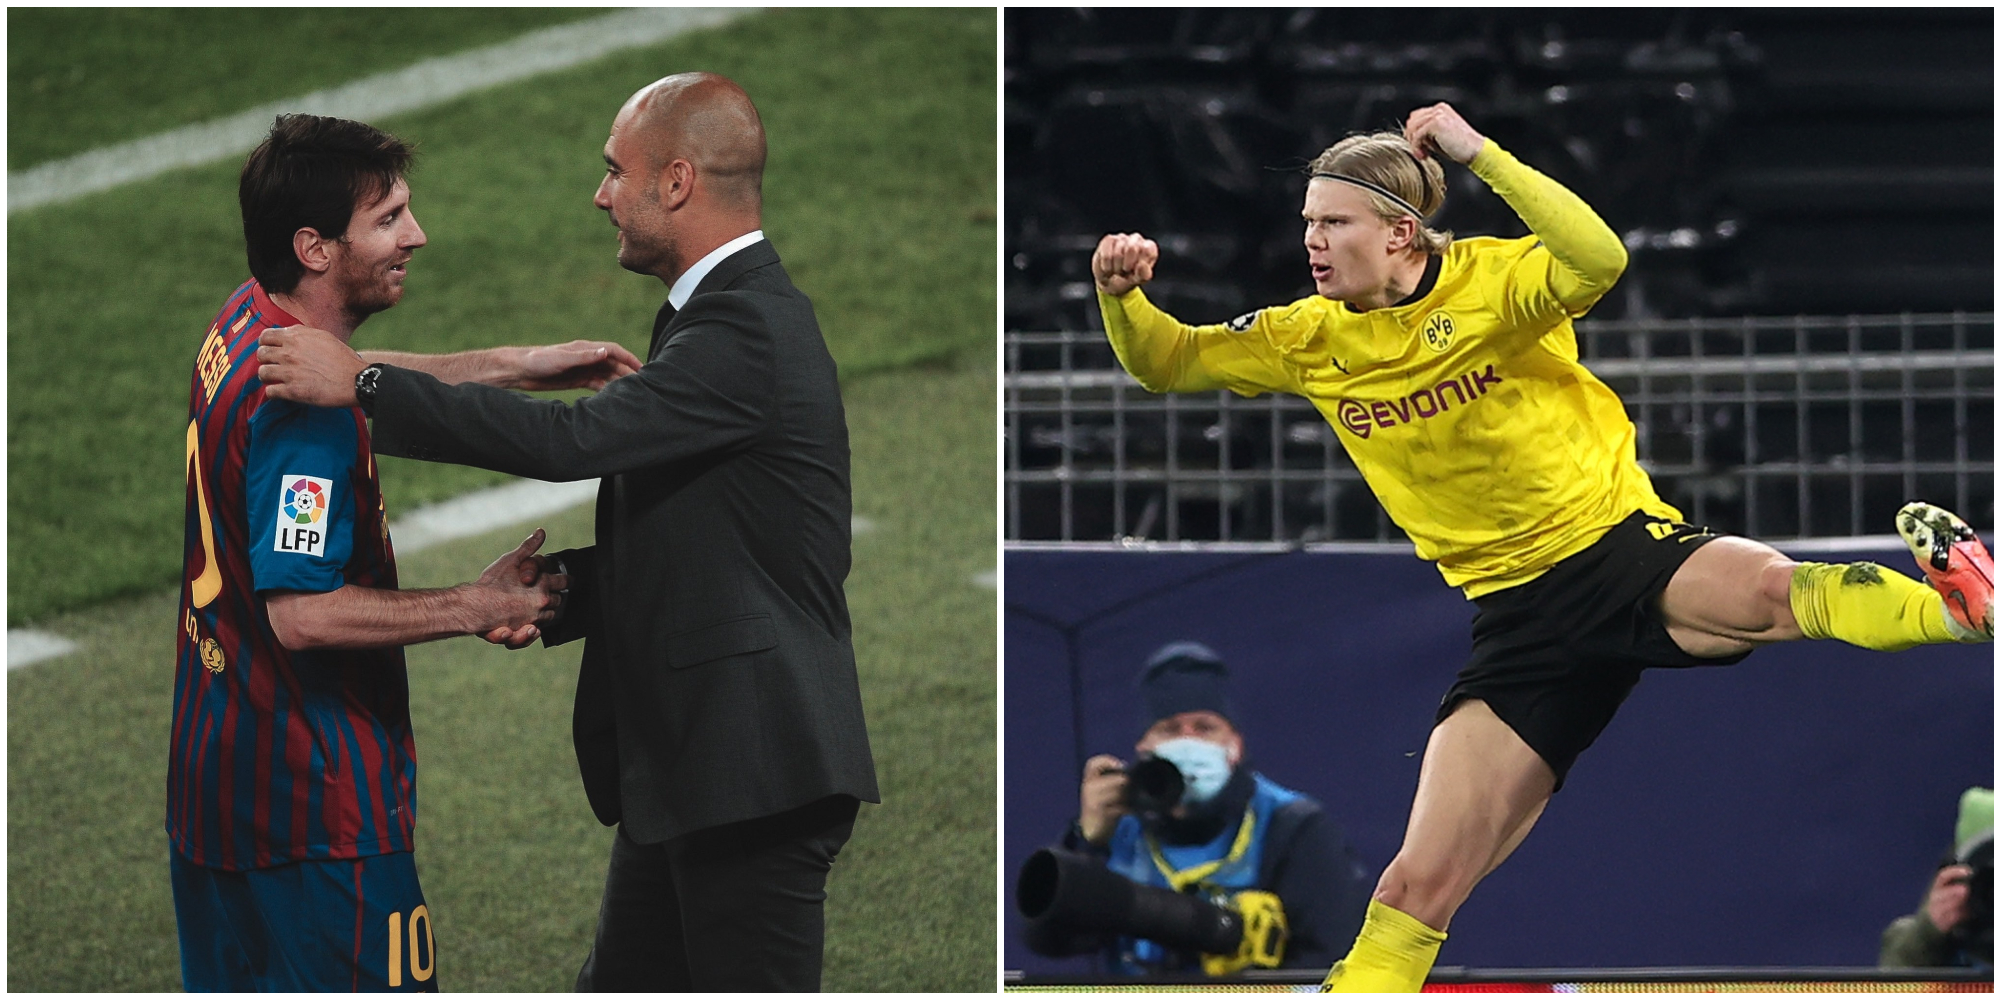 LFC face Haaland blow as Guardiola u-turn expected; Dortmund star now ahead of Messi on transfer wishlist – report